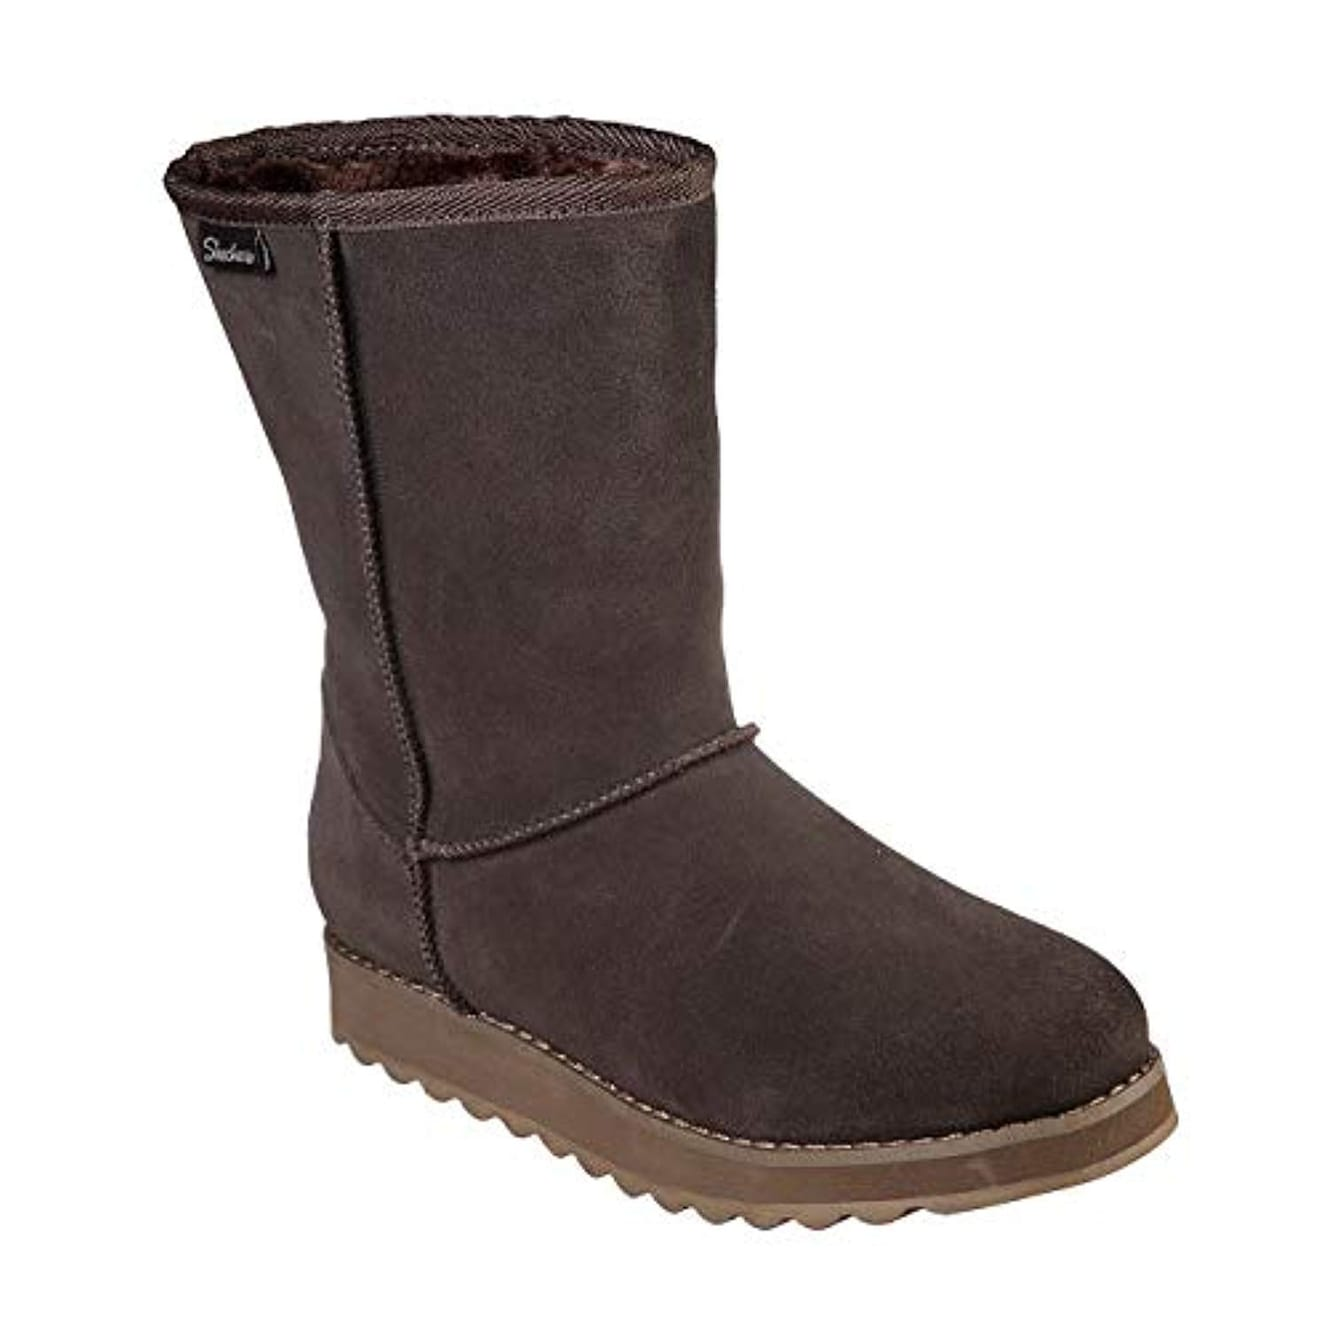 0d7aa183882 Skechers Keepsakes 2.0 First Flurry Womens Mid Calf Boots Chocolate 7